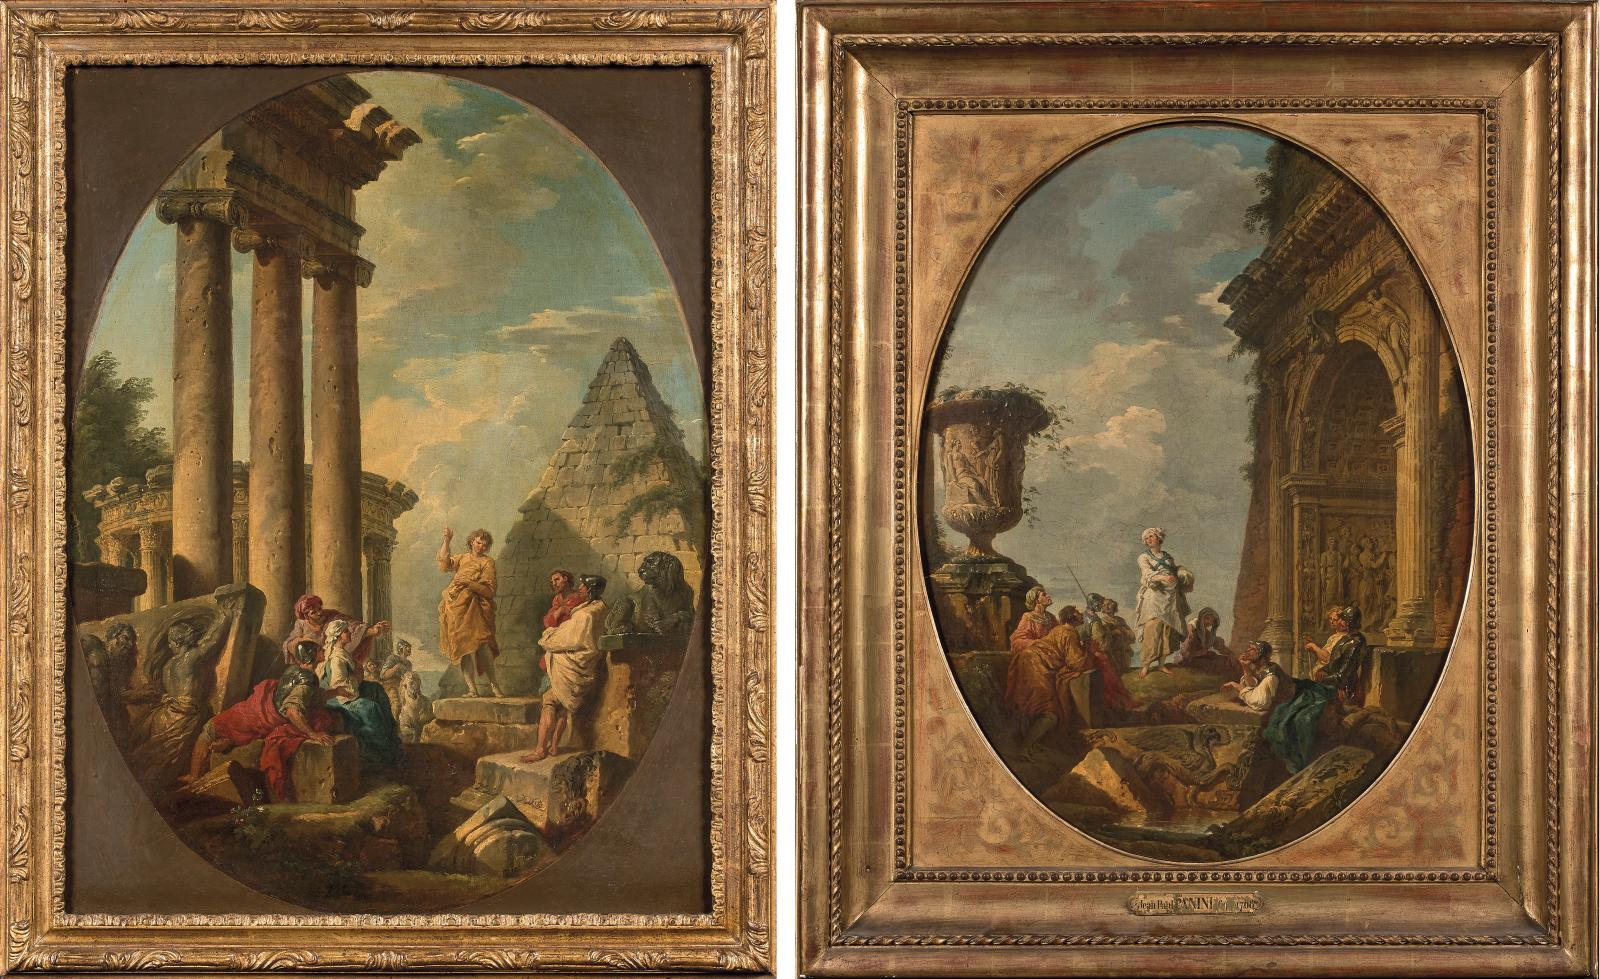 Giovanni Paolo Panini (1691-1765), Apôtre en robe jaune devant une pyramide (An architectural capriccio with an apostle preaching) and Sibylle vêtue d